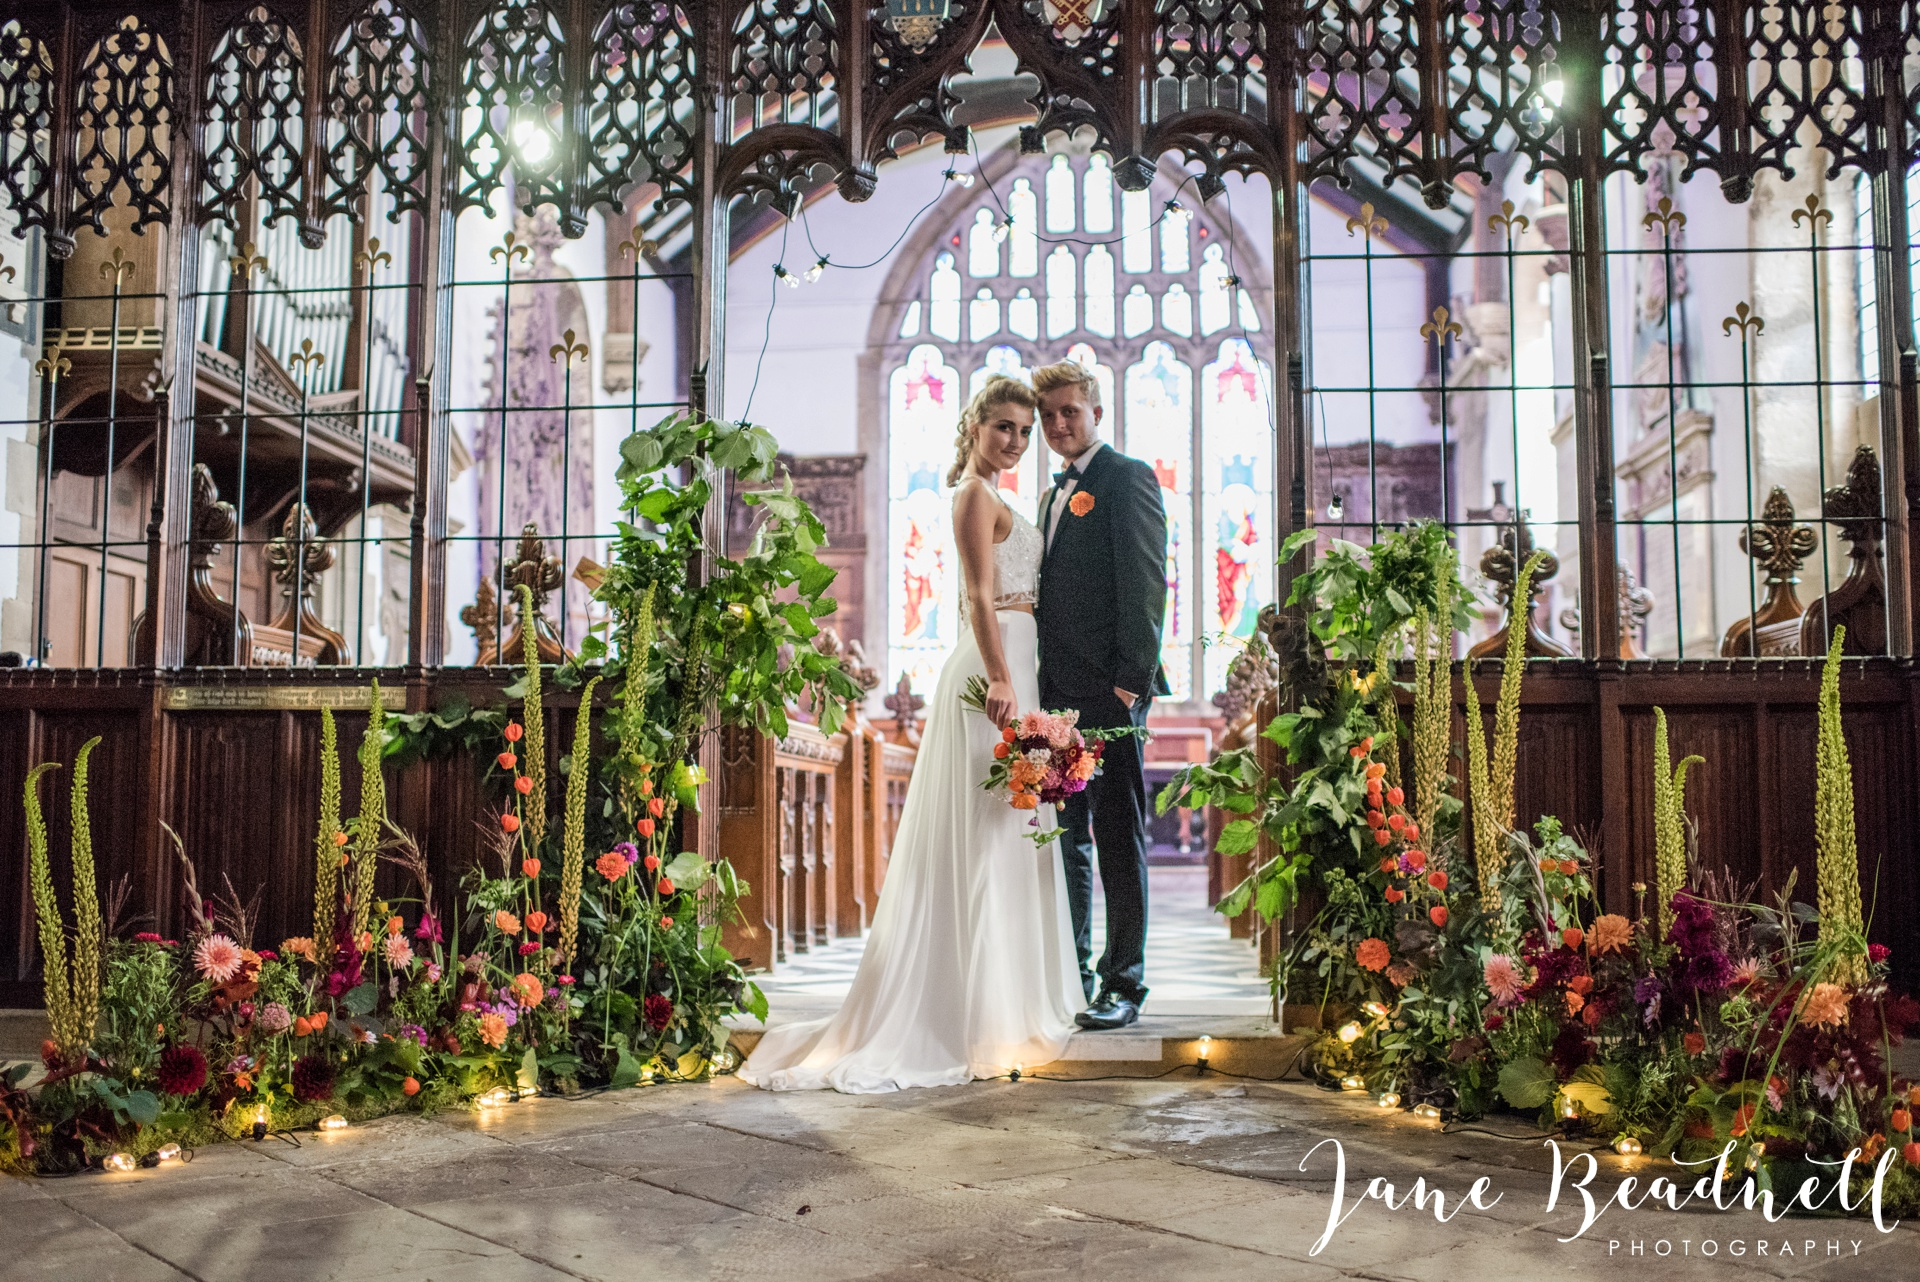 yorkshire-fine-art-wedding-photographer-jane-beadnell-photography-with-leafy-couture-wedding-flowers_0022